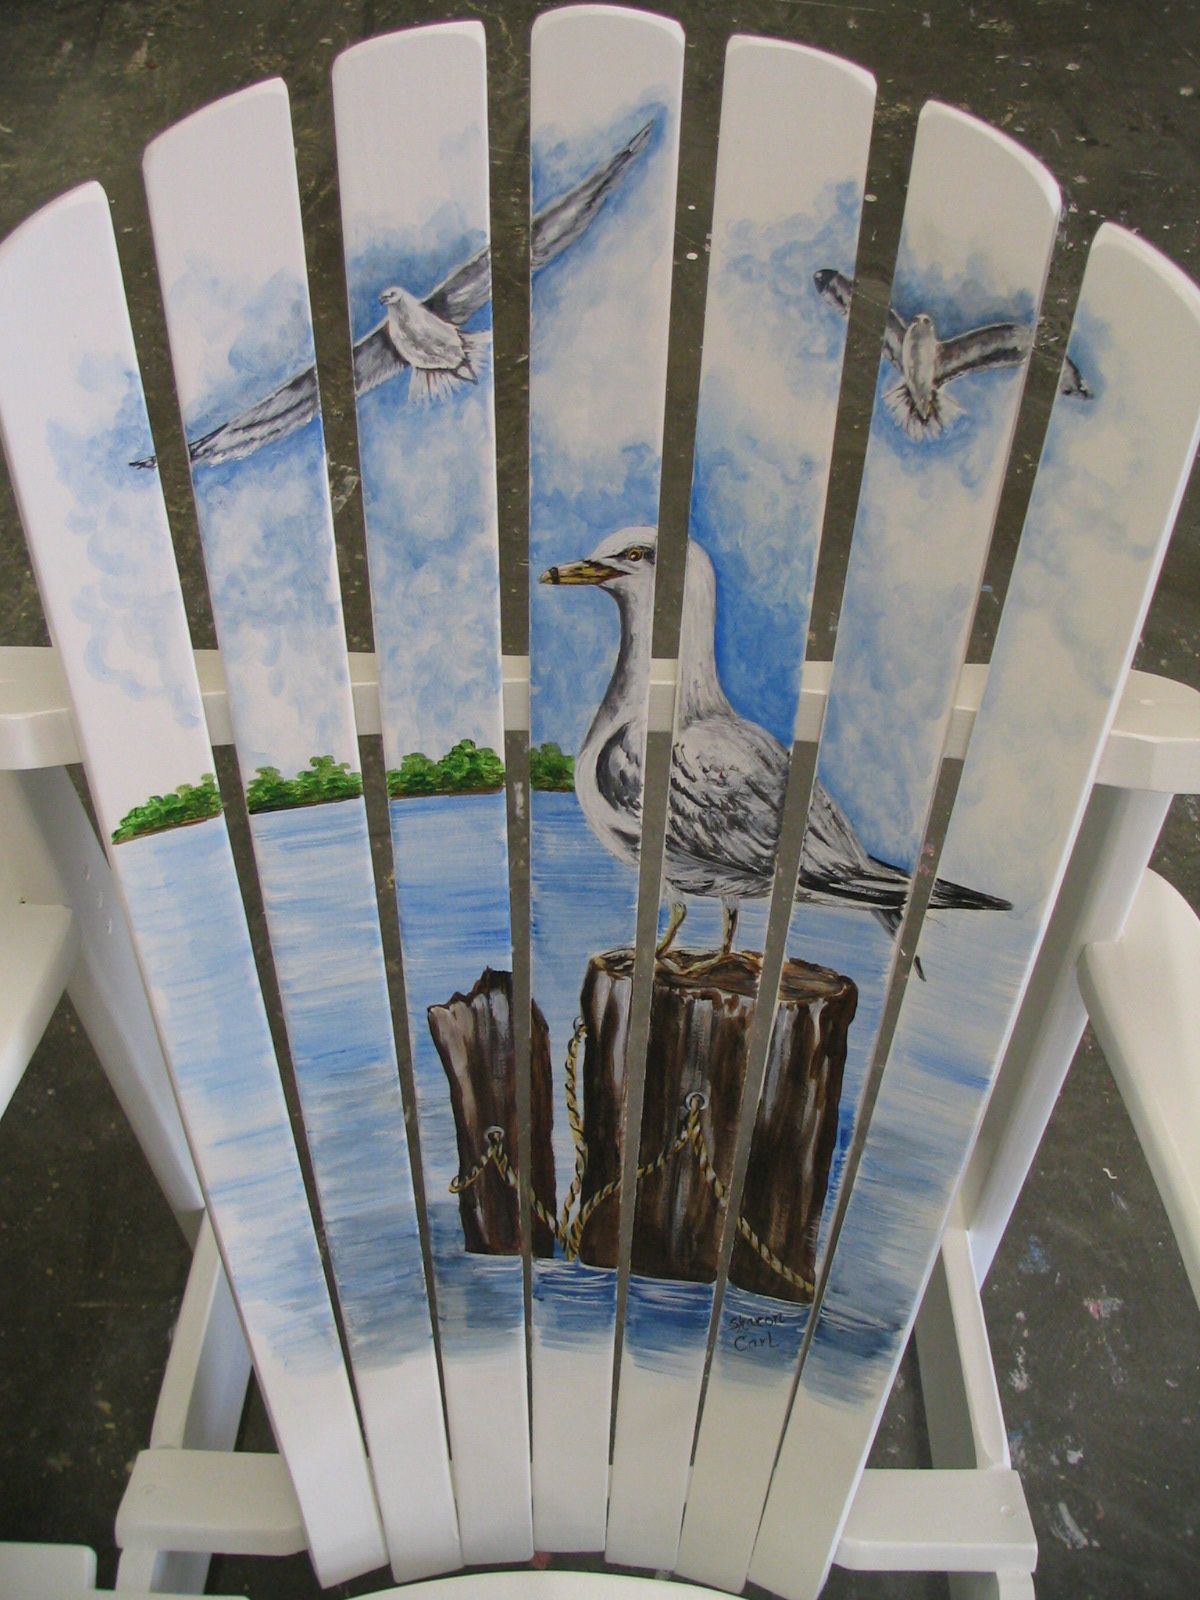 painted adirondack chairs bedroom chair asda with seagulls on a pier the